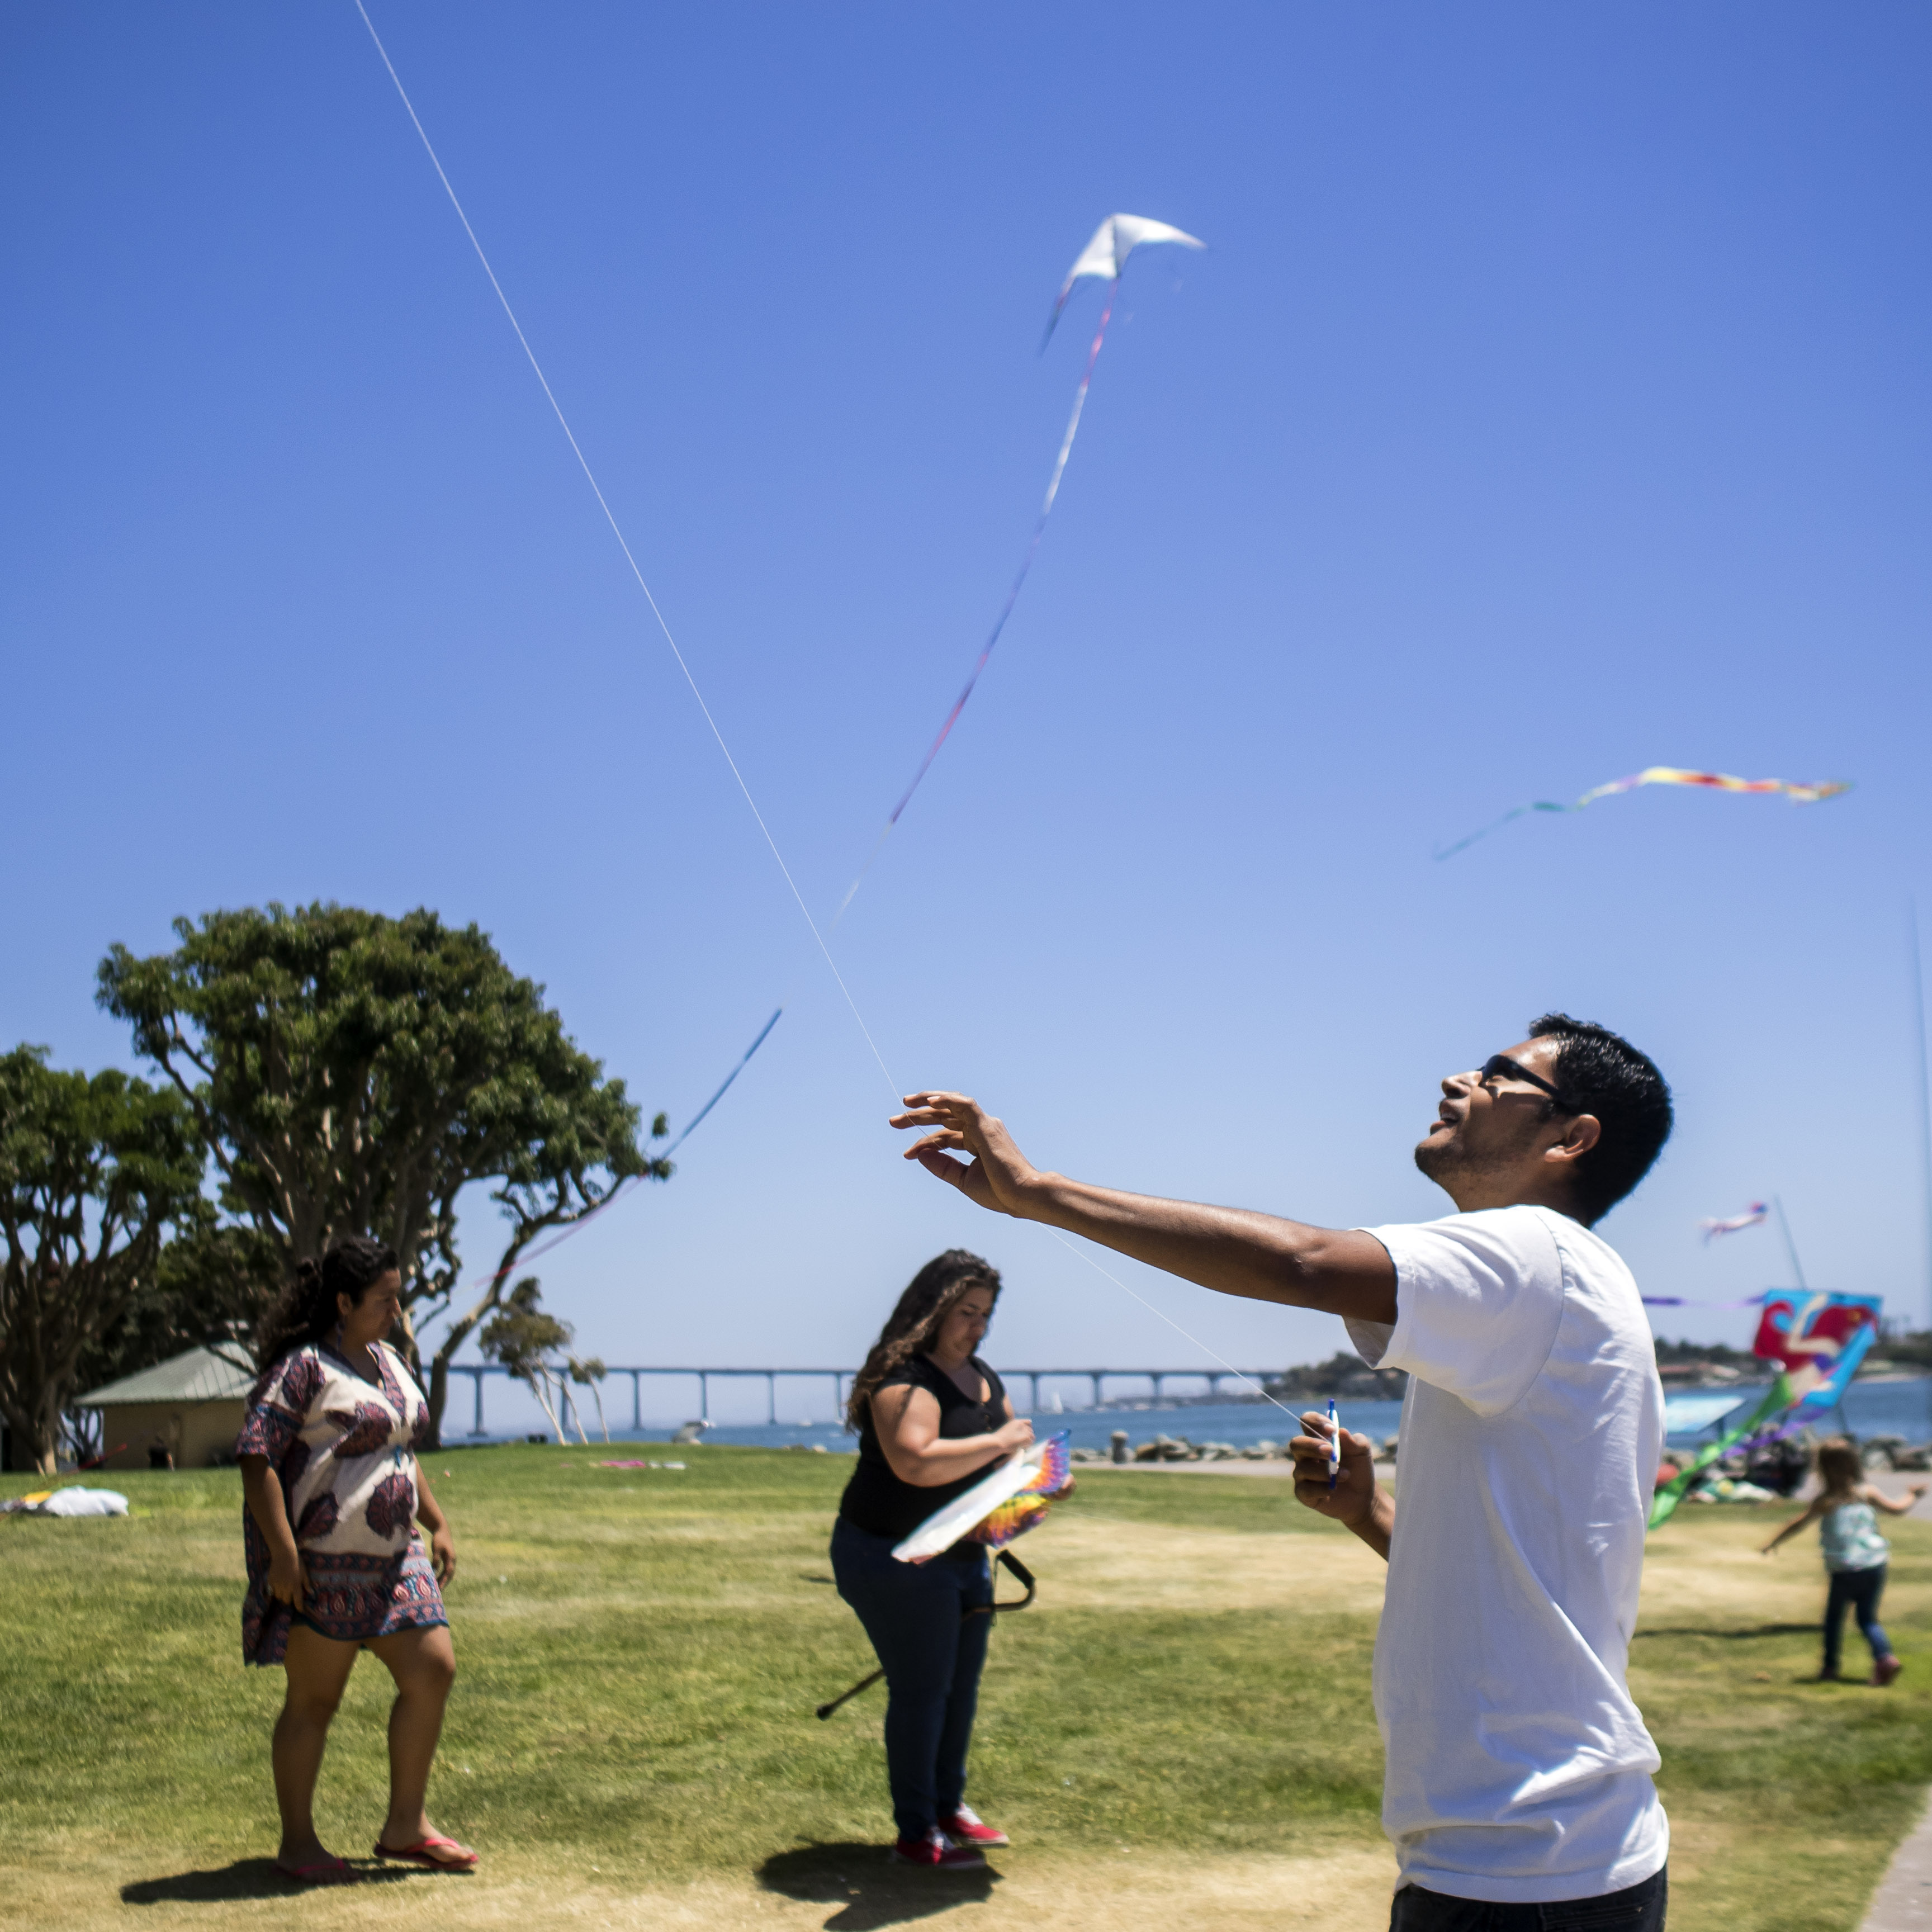 Young people taking part in a mental illness prevention program called Kickstart fly kites at San Diego's Seaport Village. Marvi/KQED)